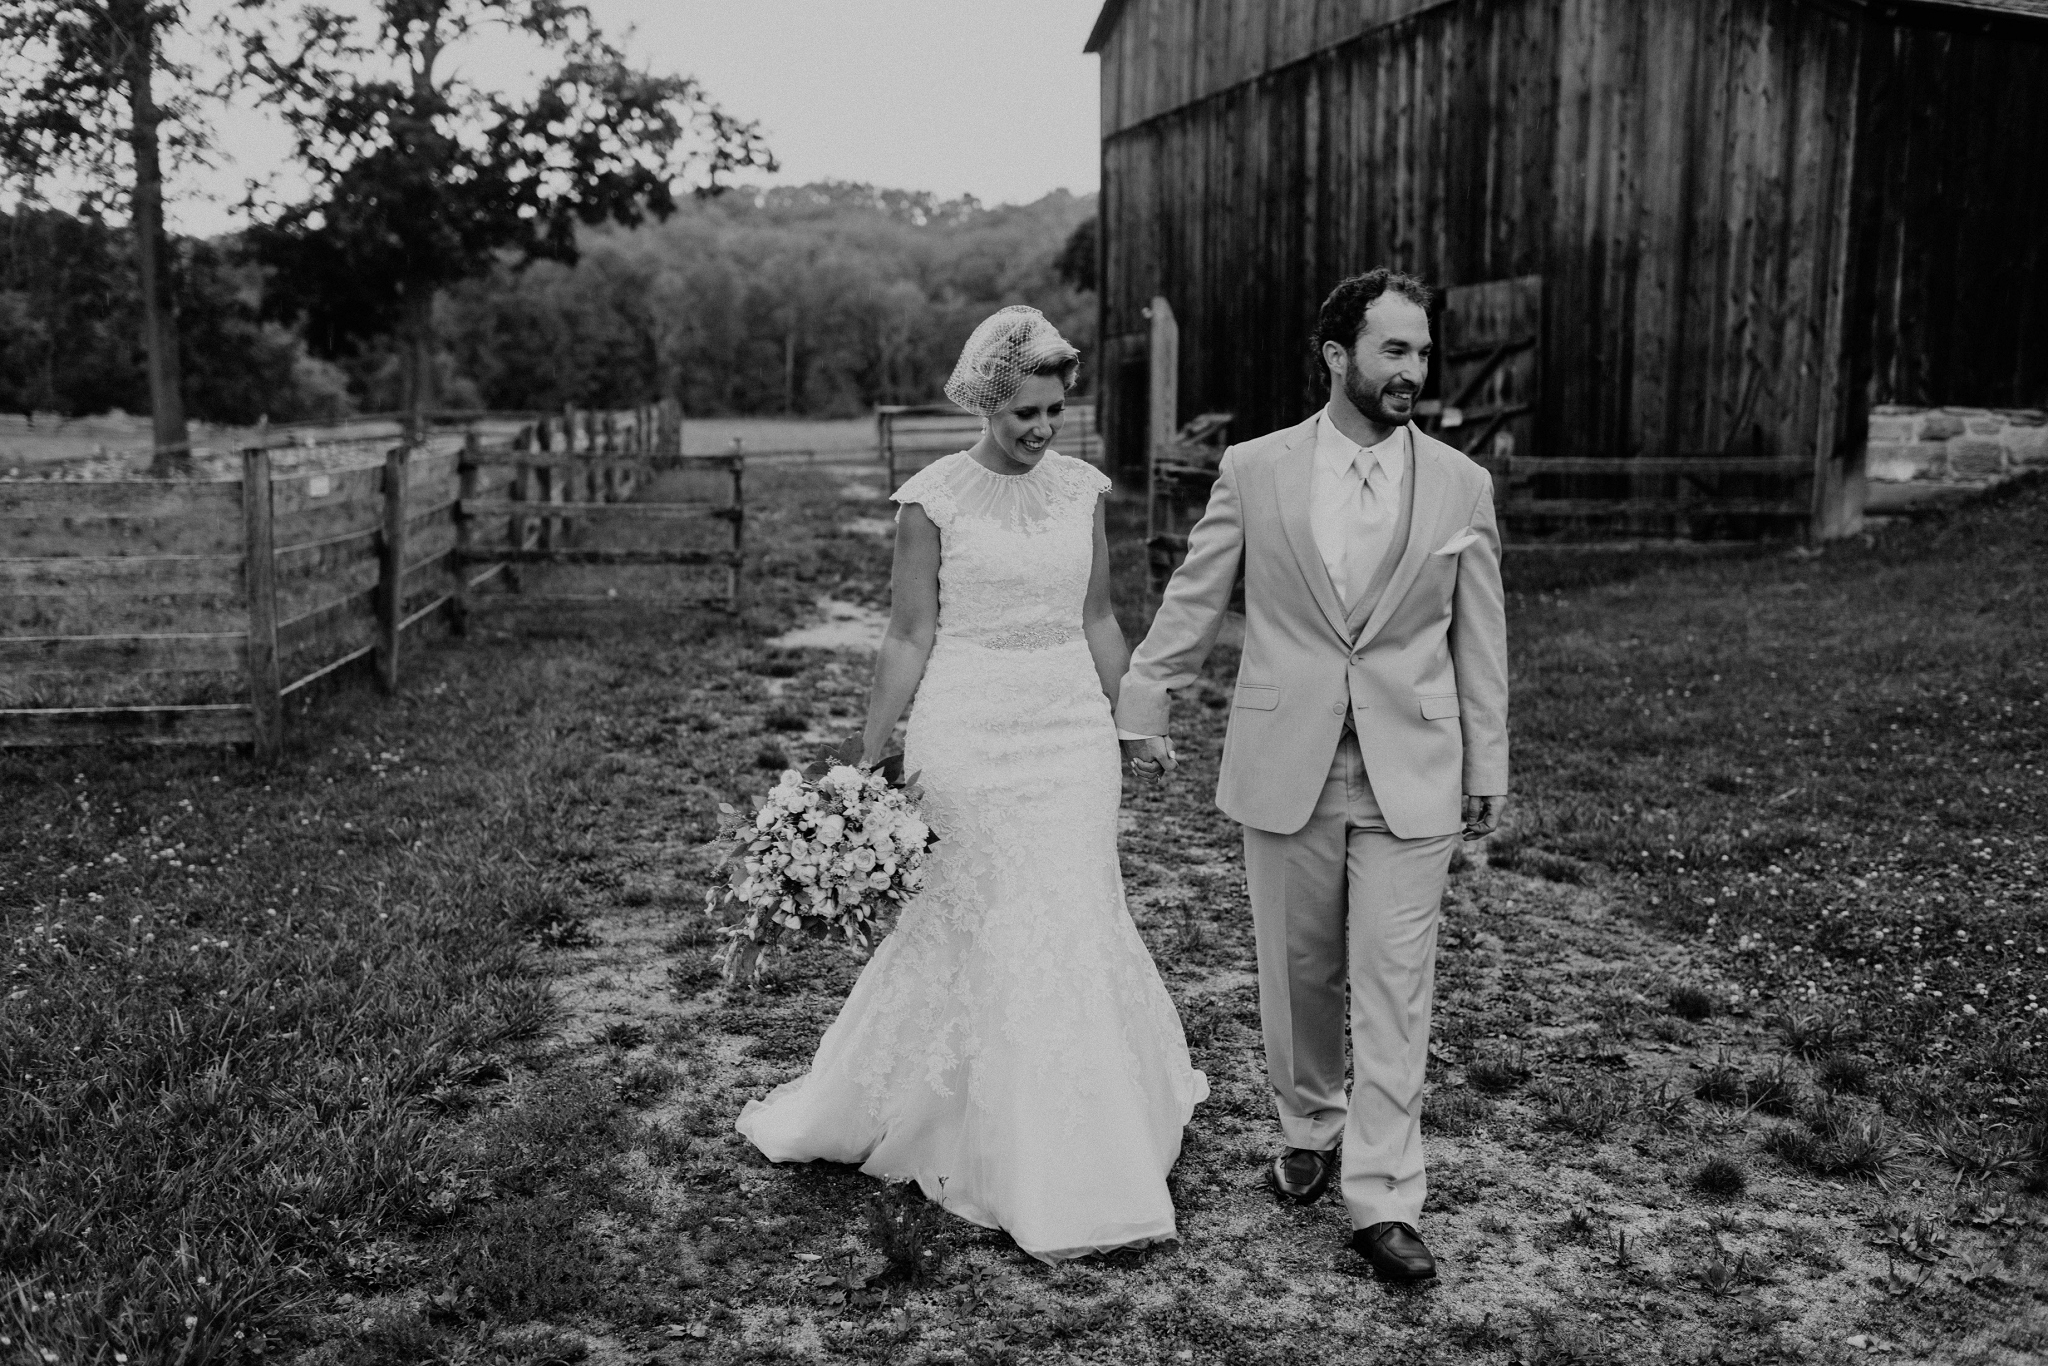 Hines-Hill-Farm-Cuyahoga-Valley-National-Park-Wedding_Emi+Andy_MJPHOTO-115.jpg